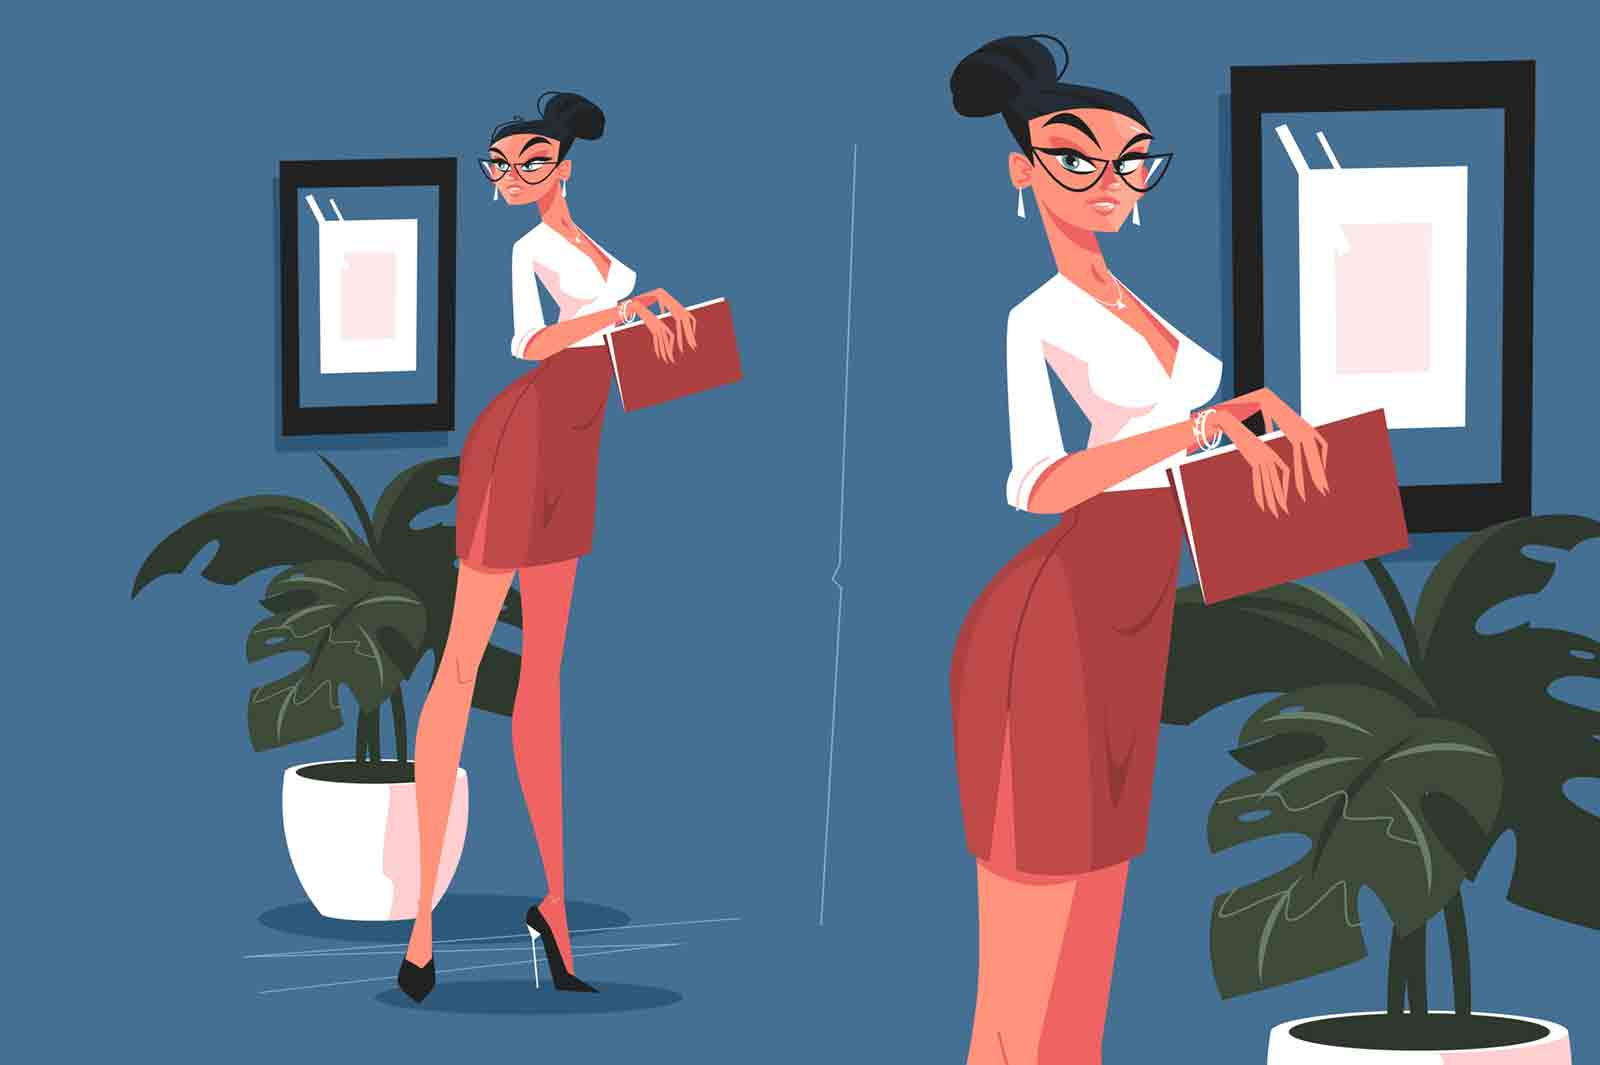 Cute secretary in office vector illustration. Attractive woman in mini skirt and blouse holding paper folder flat style concept. Stylish assistant manager